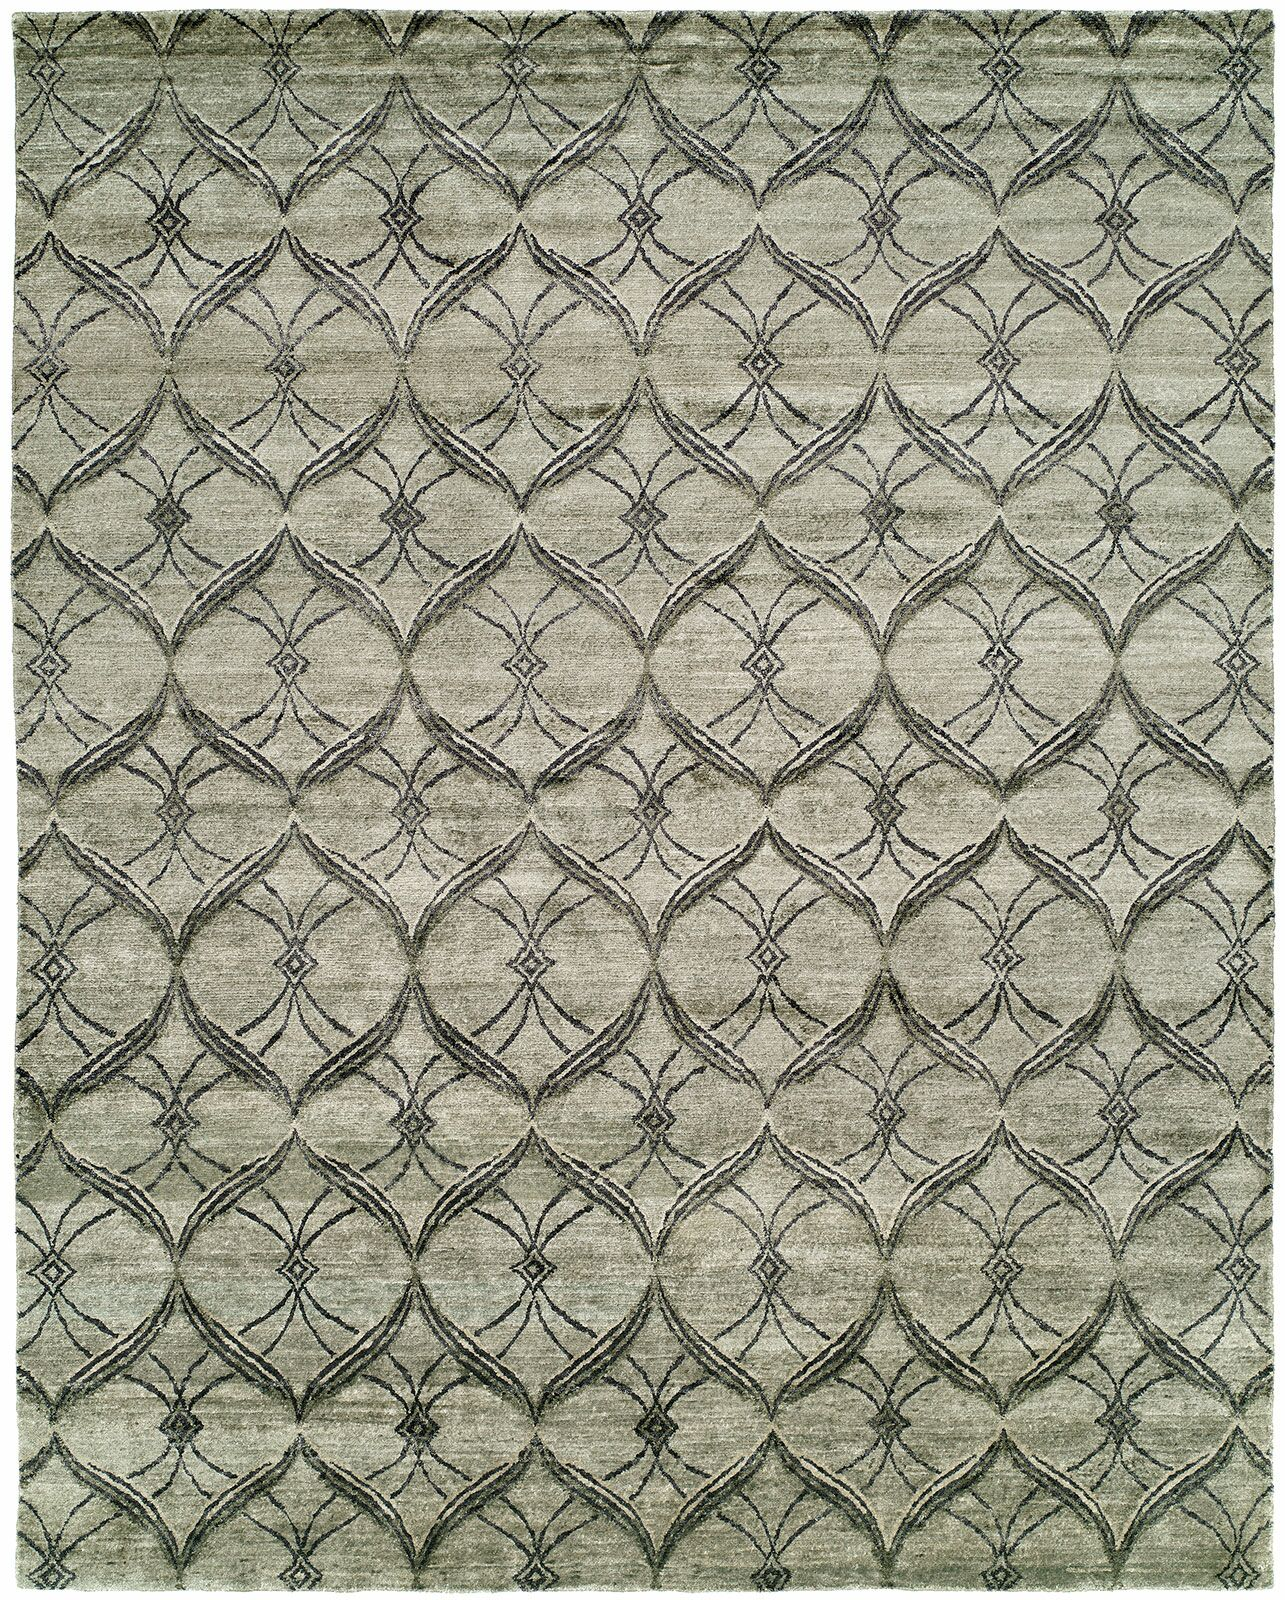 Montauk Hand-Knotted Gray Area Rug Rug Size: Runner 2'6